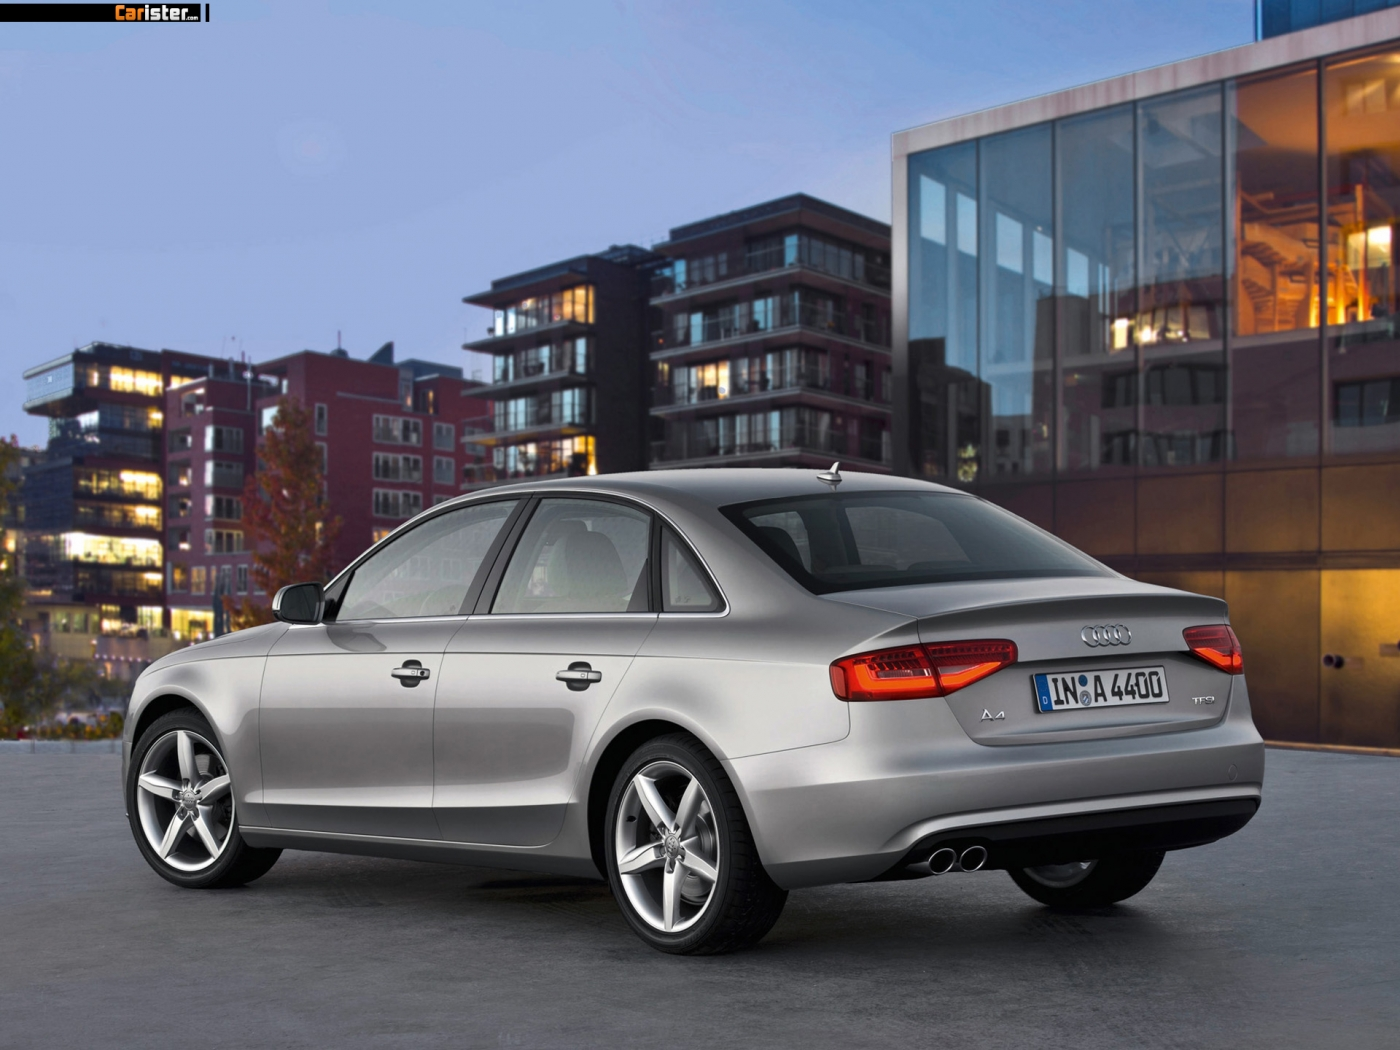 Audi A4 2012 - Photo 20 - Taille: 1400x1050